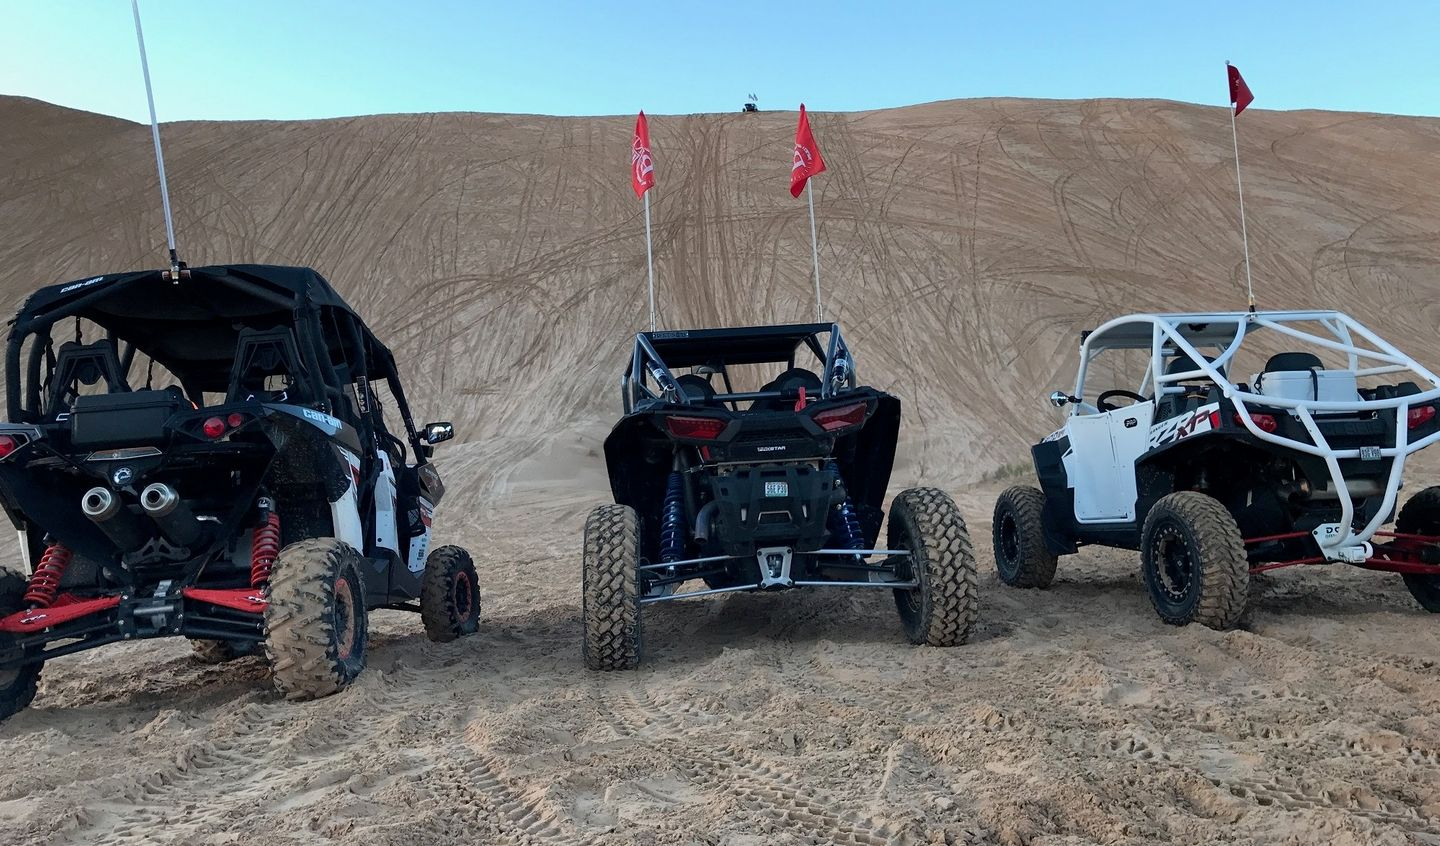 Imperial Sand Dunes Recreation Area - Glamis - Waypoint 11: China Wall